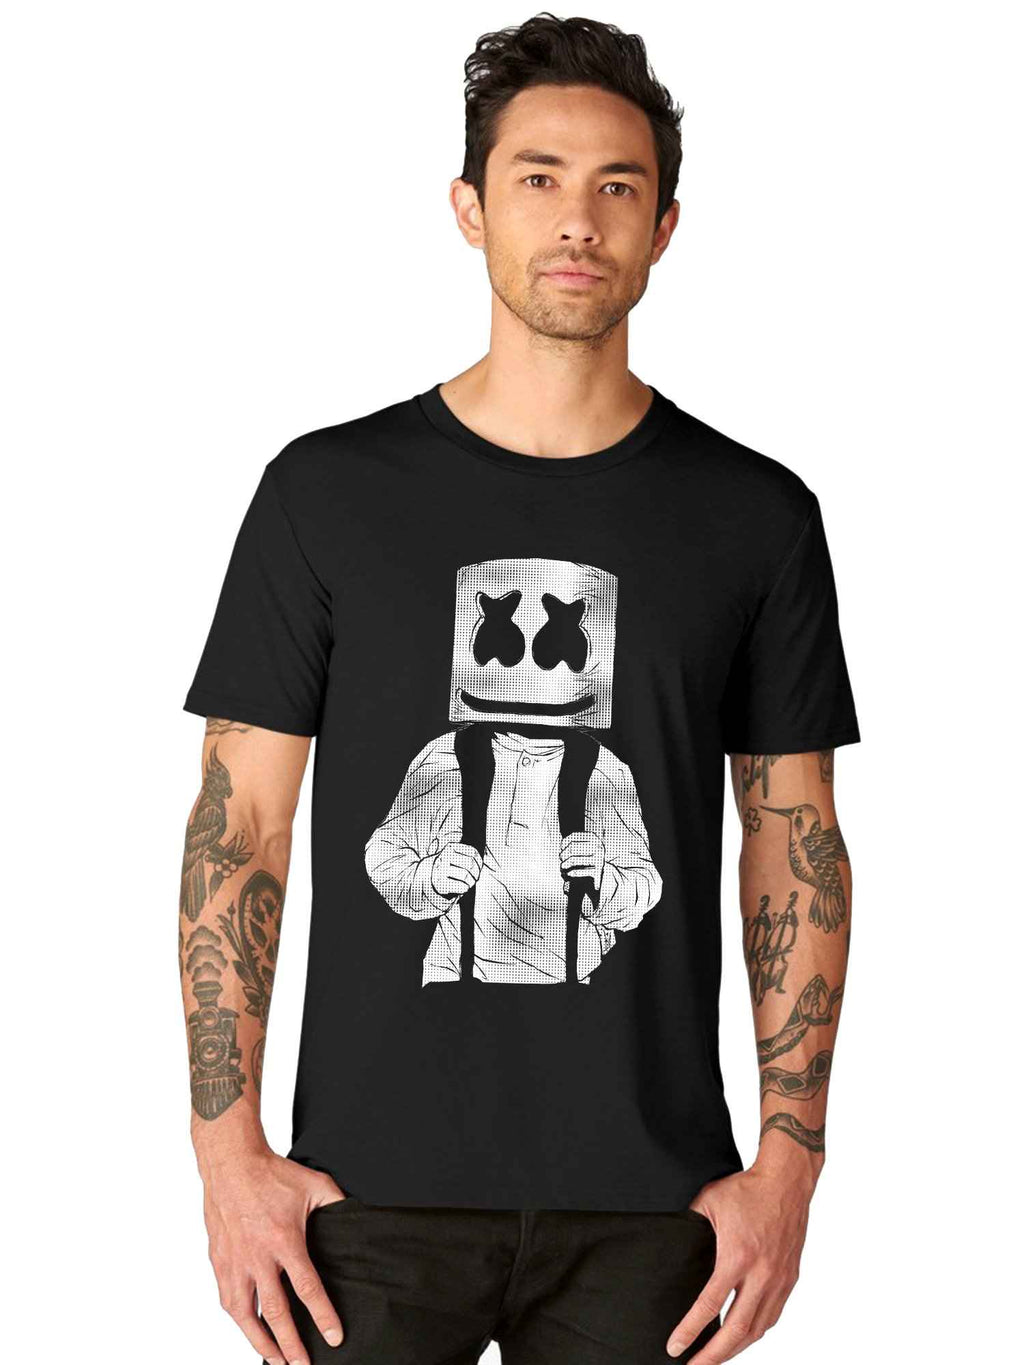 Marshmello Alone Half Tshirt - bluehaat